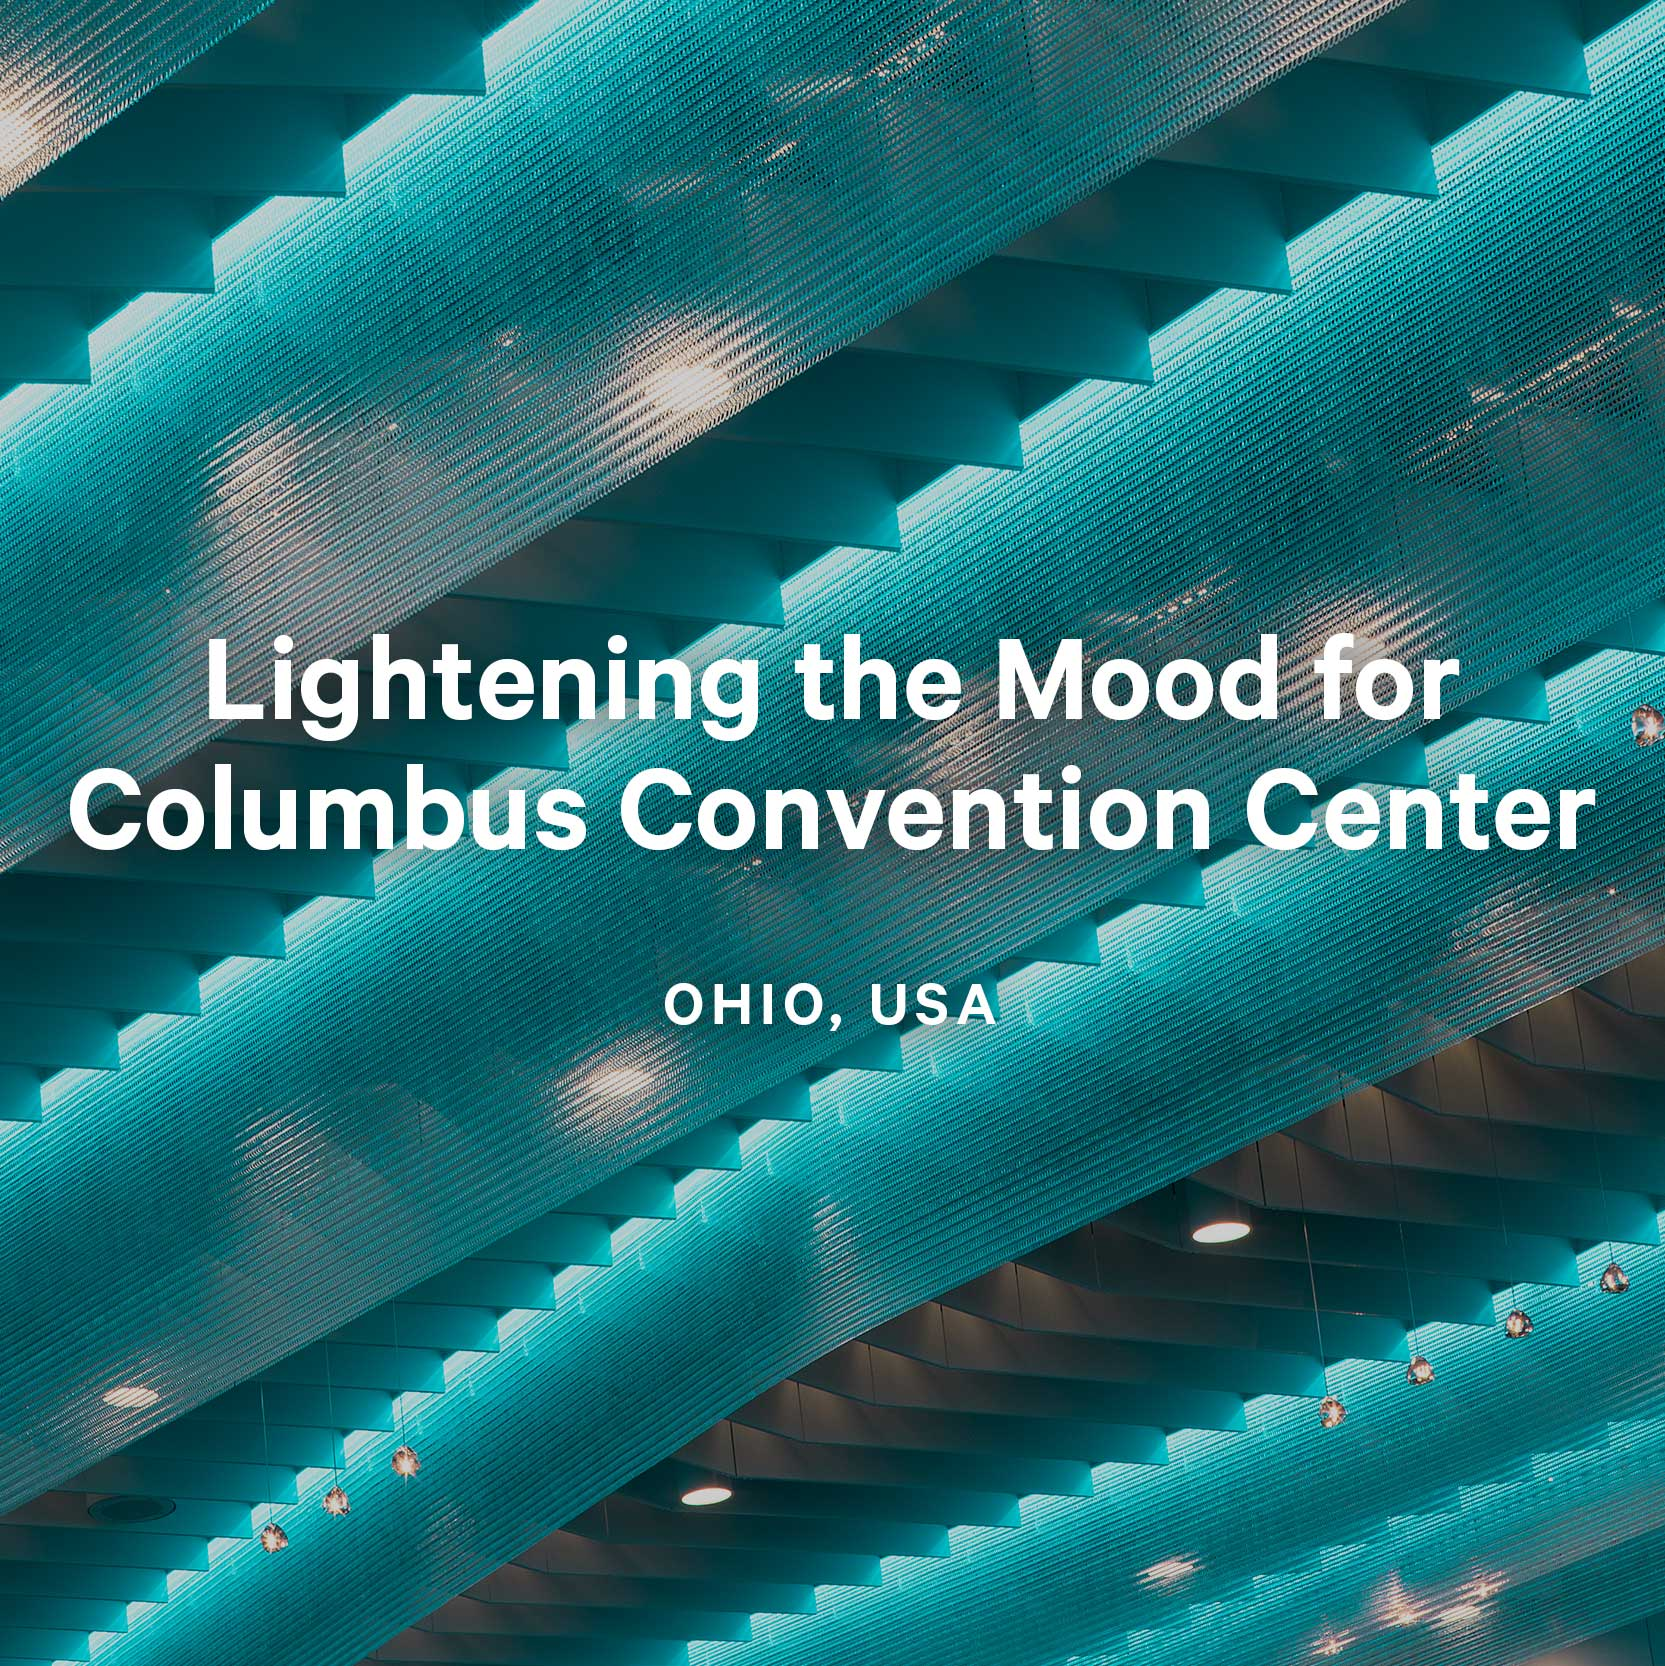 Lightening the Mood for Columbus Convention Center